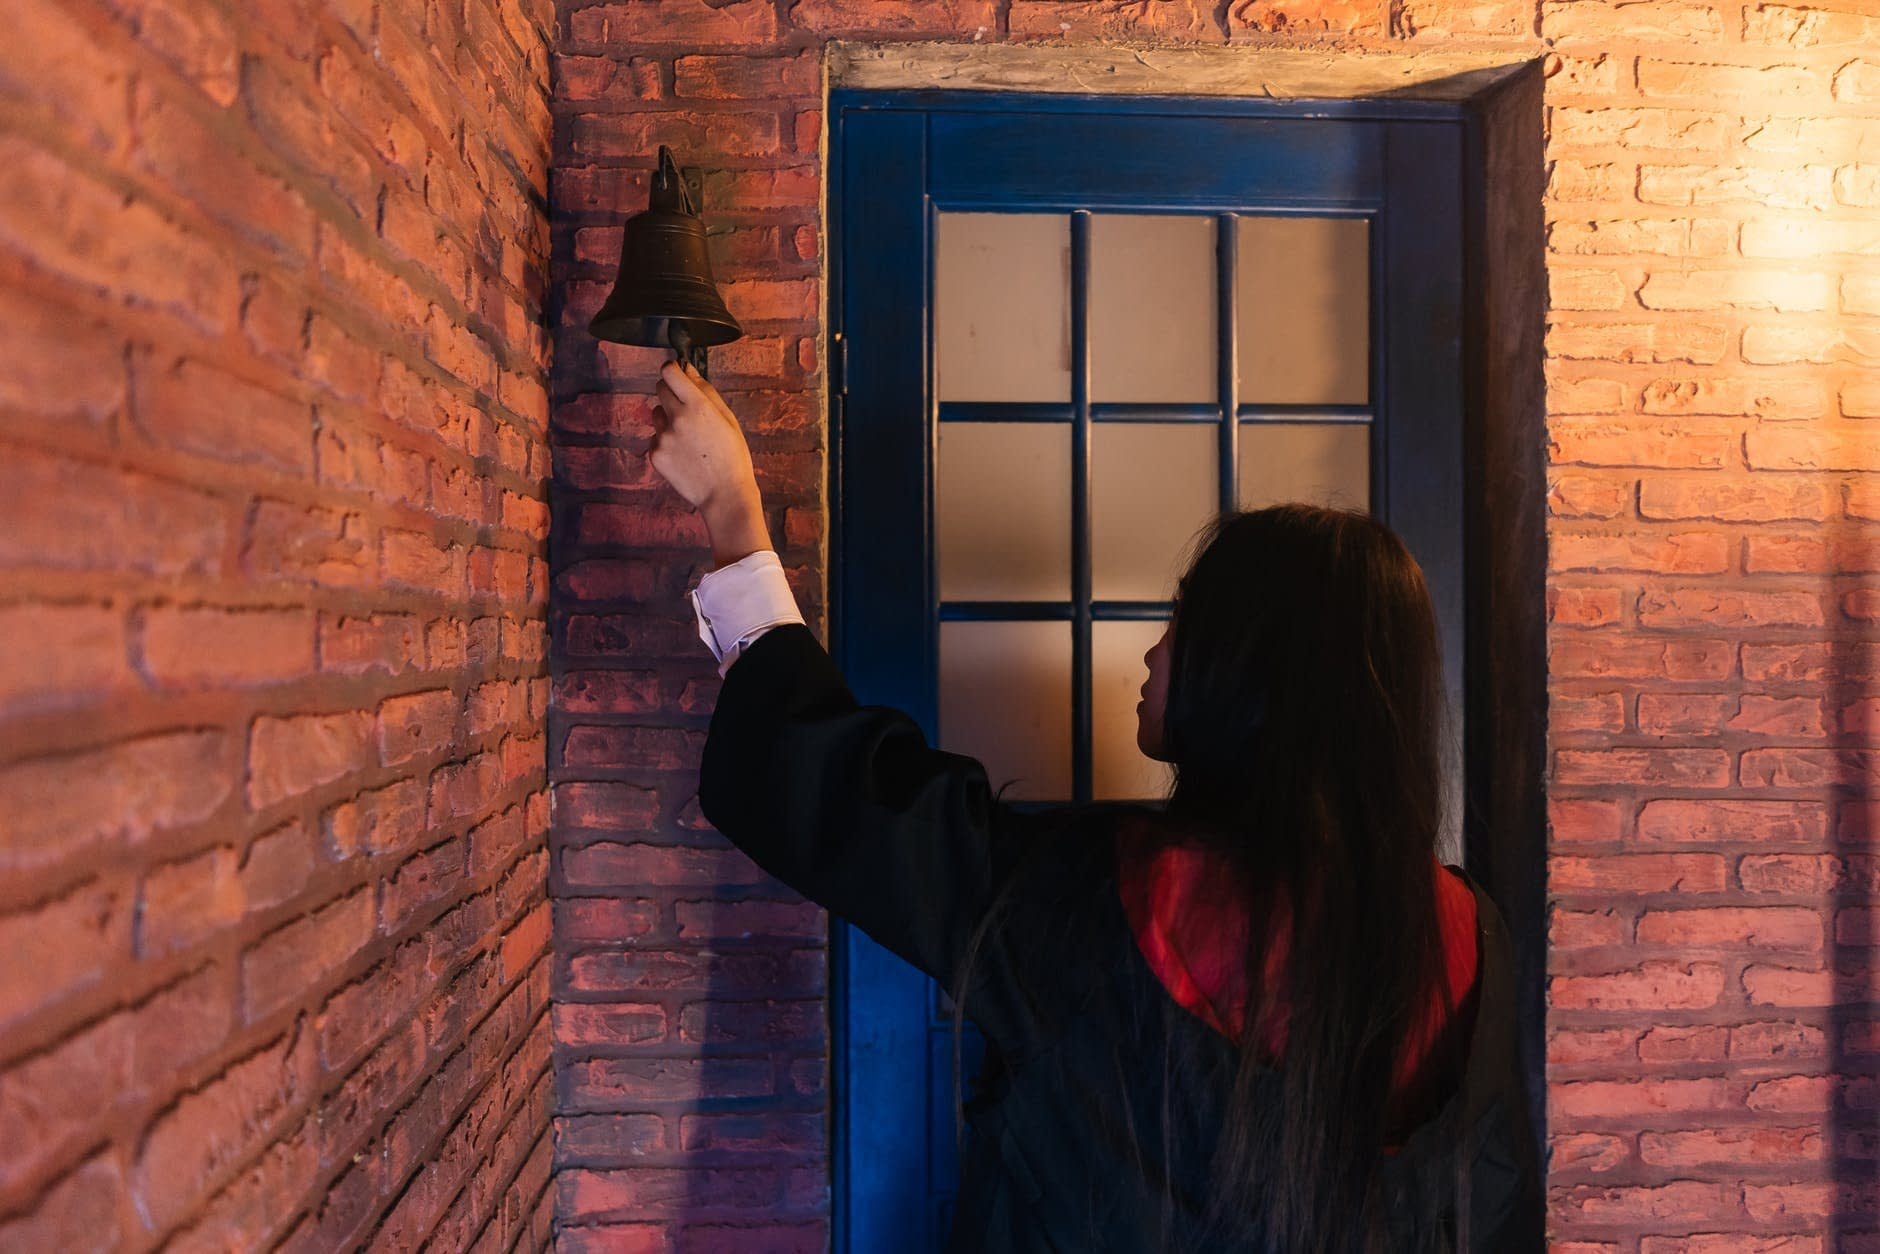 person by the door holding bell s clapper